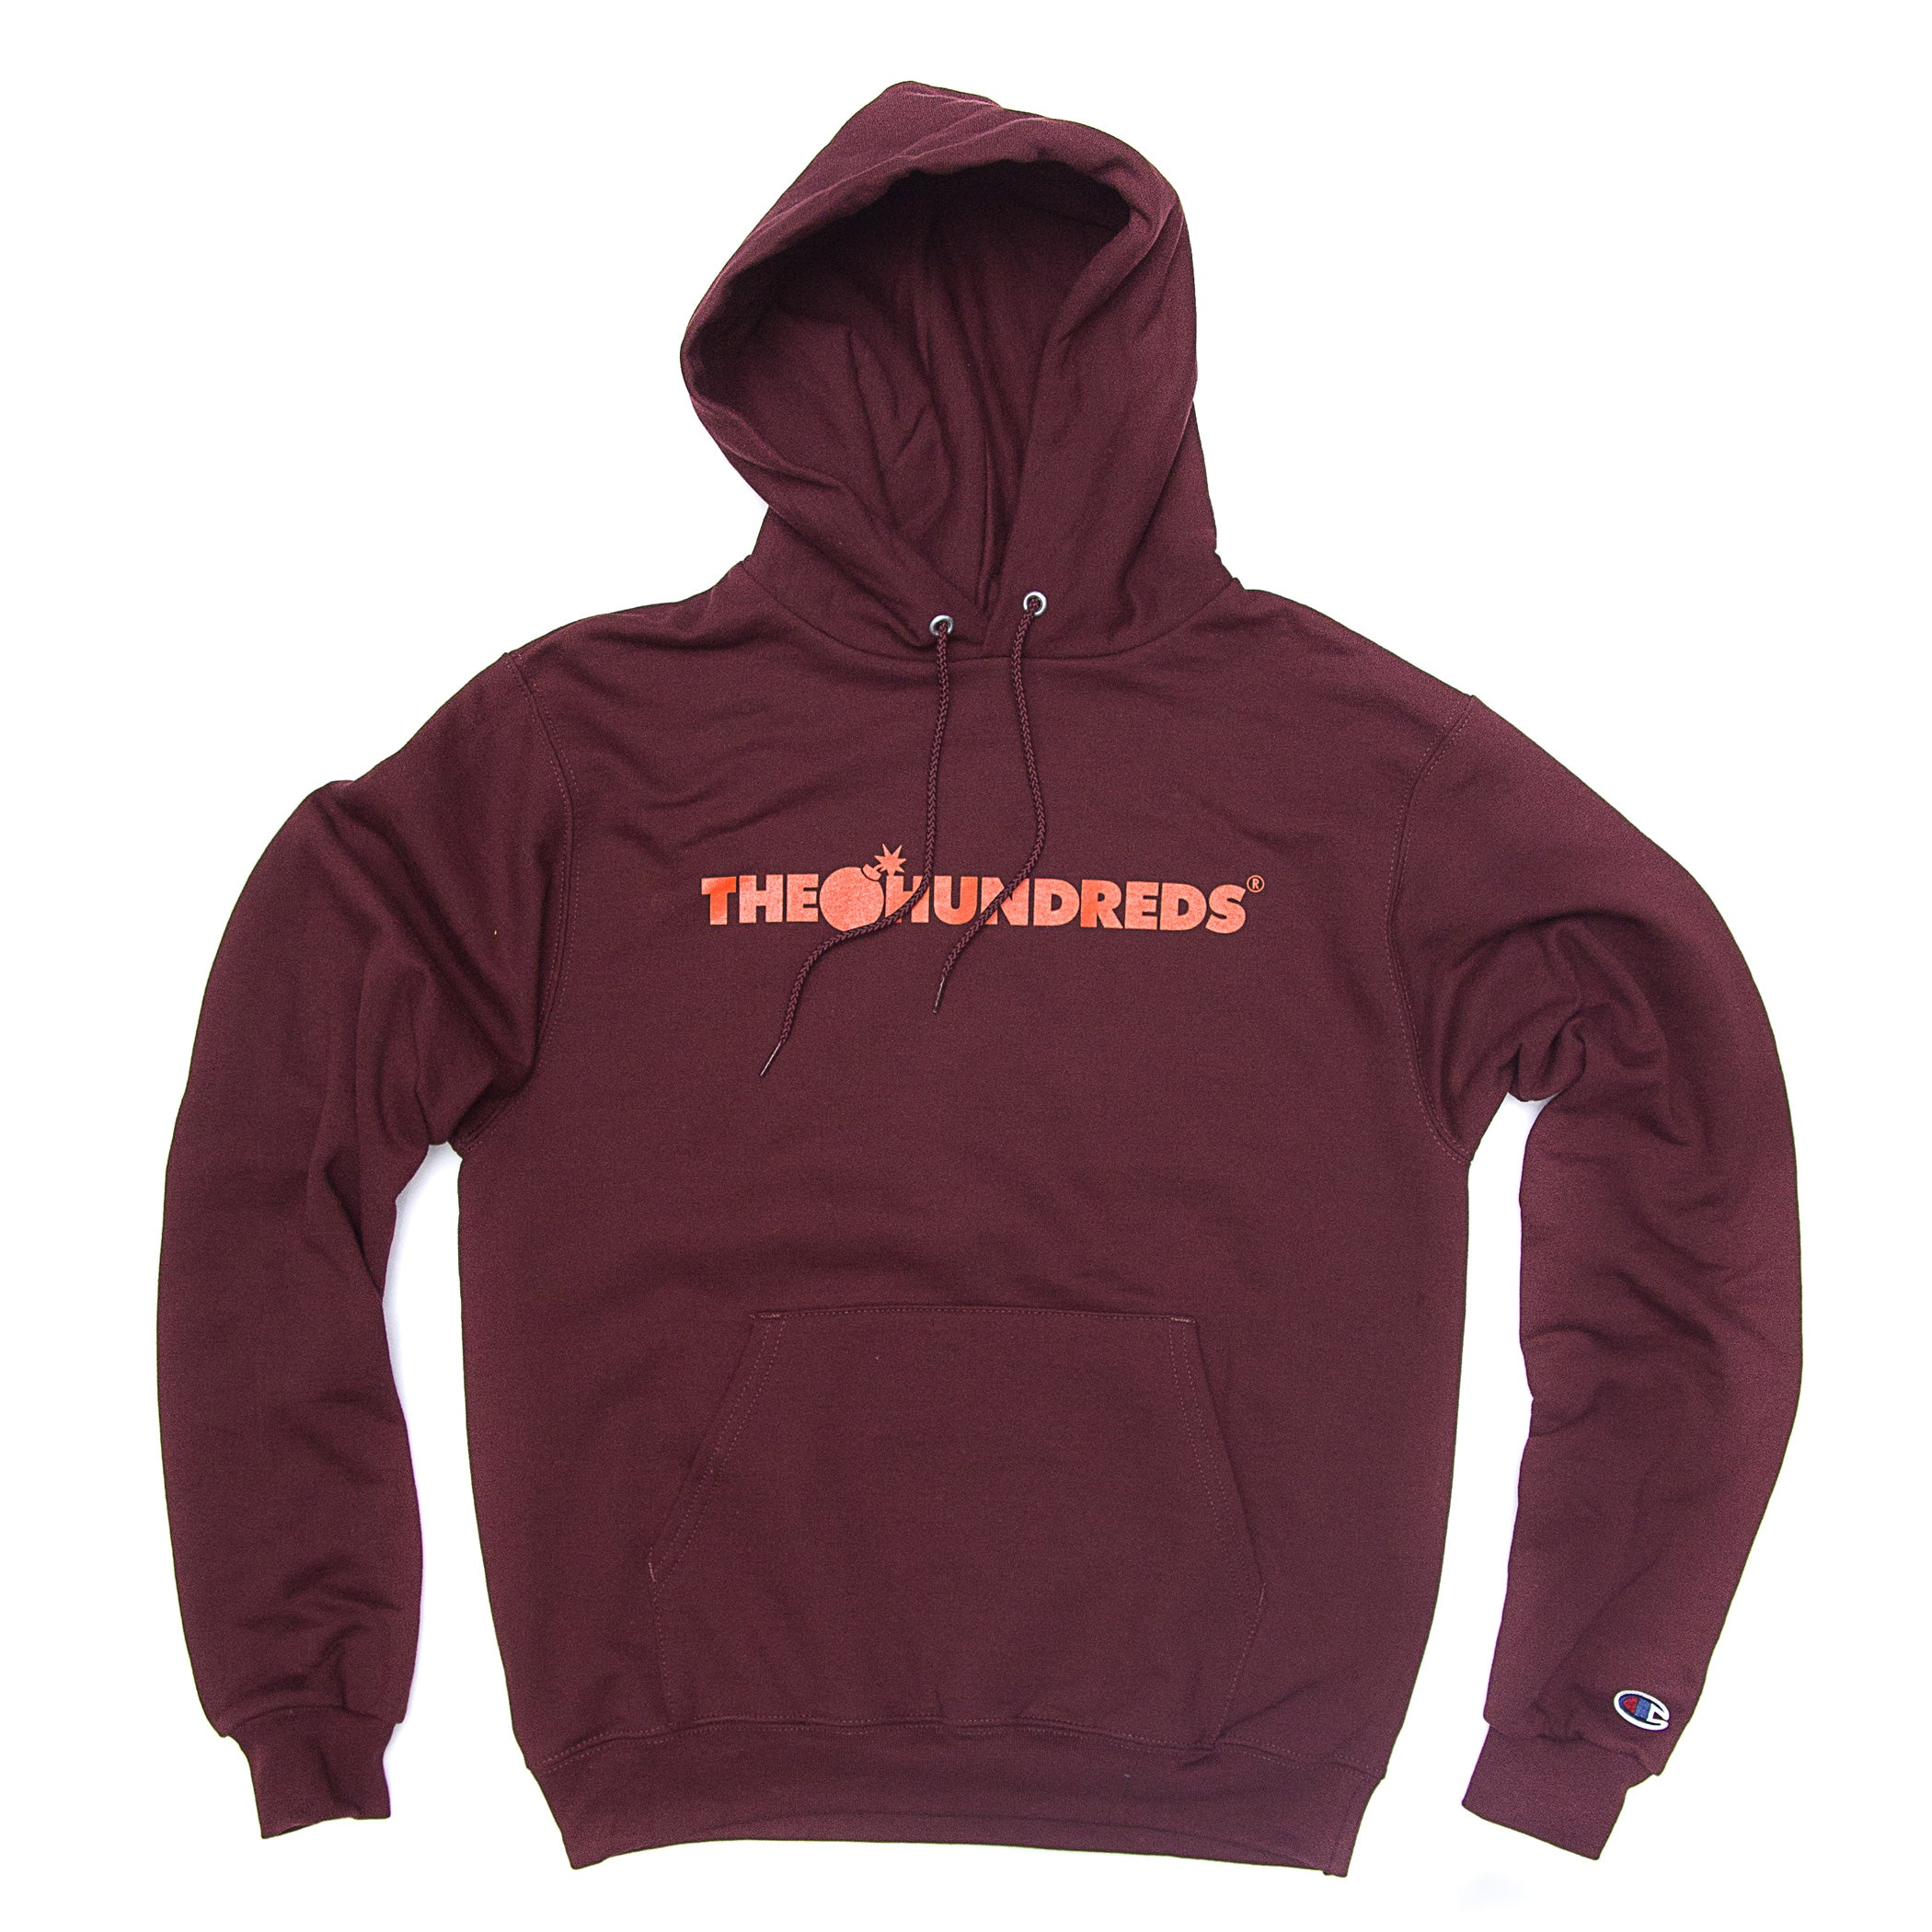 The Hundreds - Bar Logo Champion Hoodie